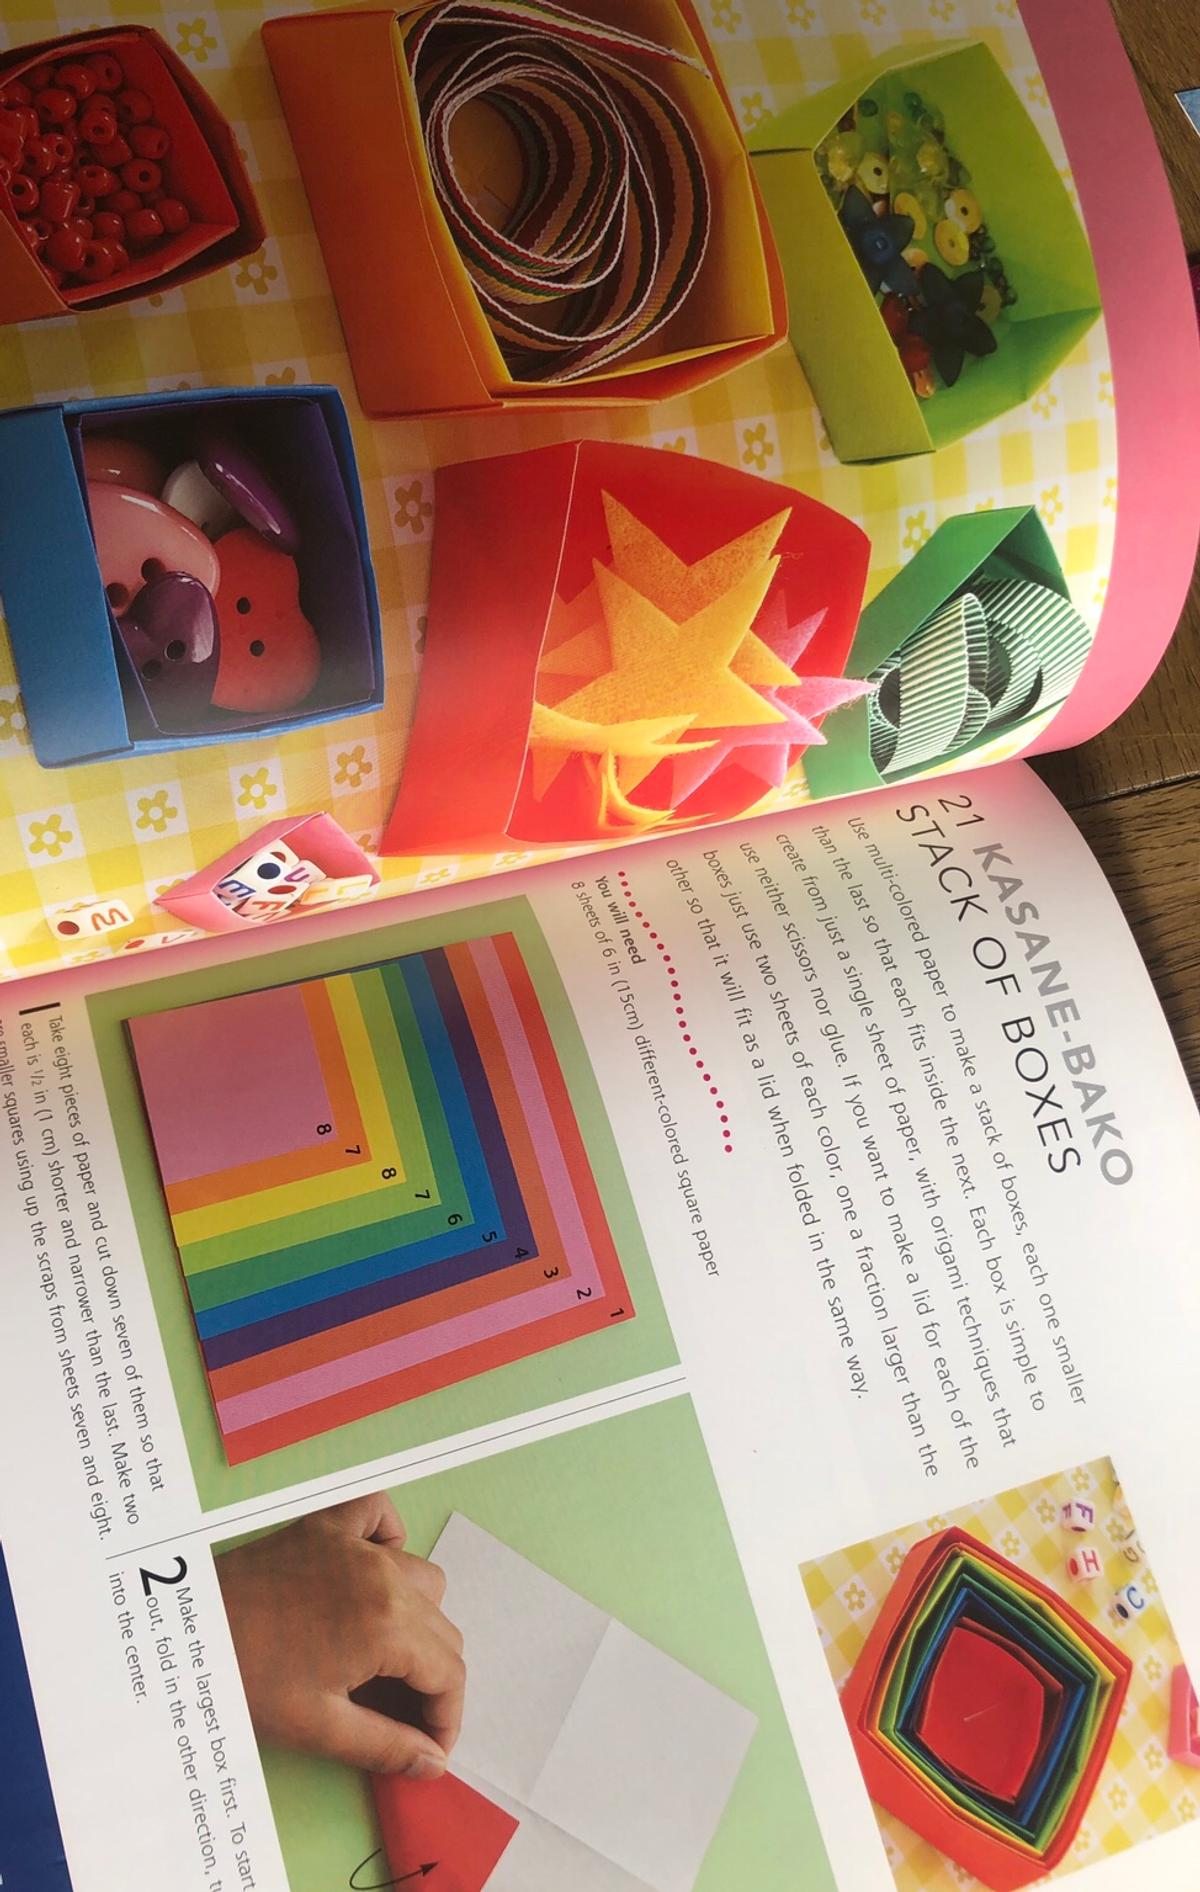 Origami for Kids eBook: Young Scholar: Amazon.co.uk: Kindle Store | 1892x1200